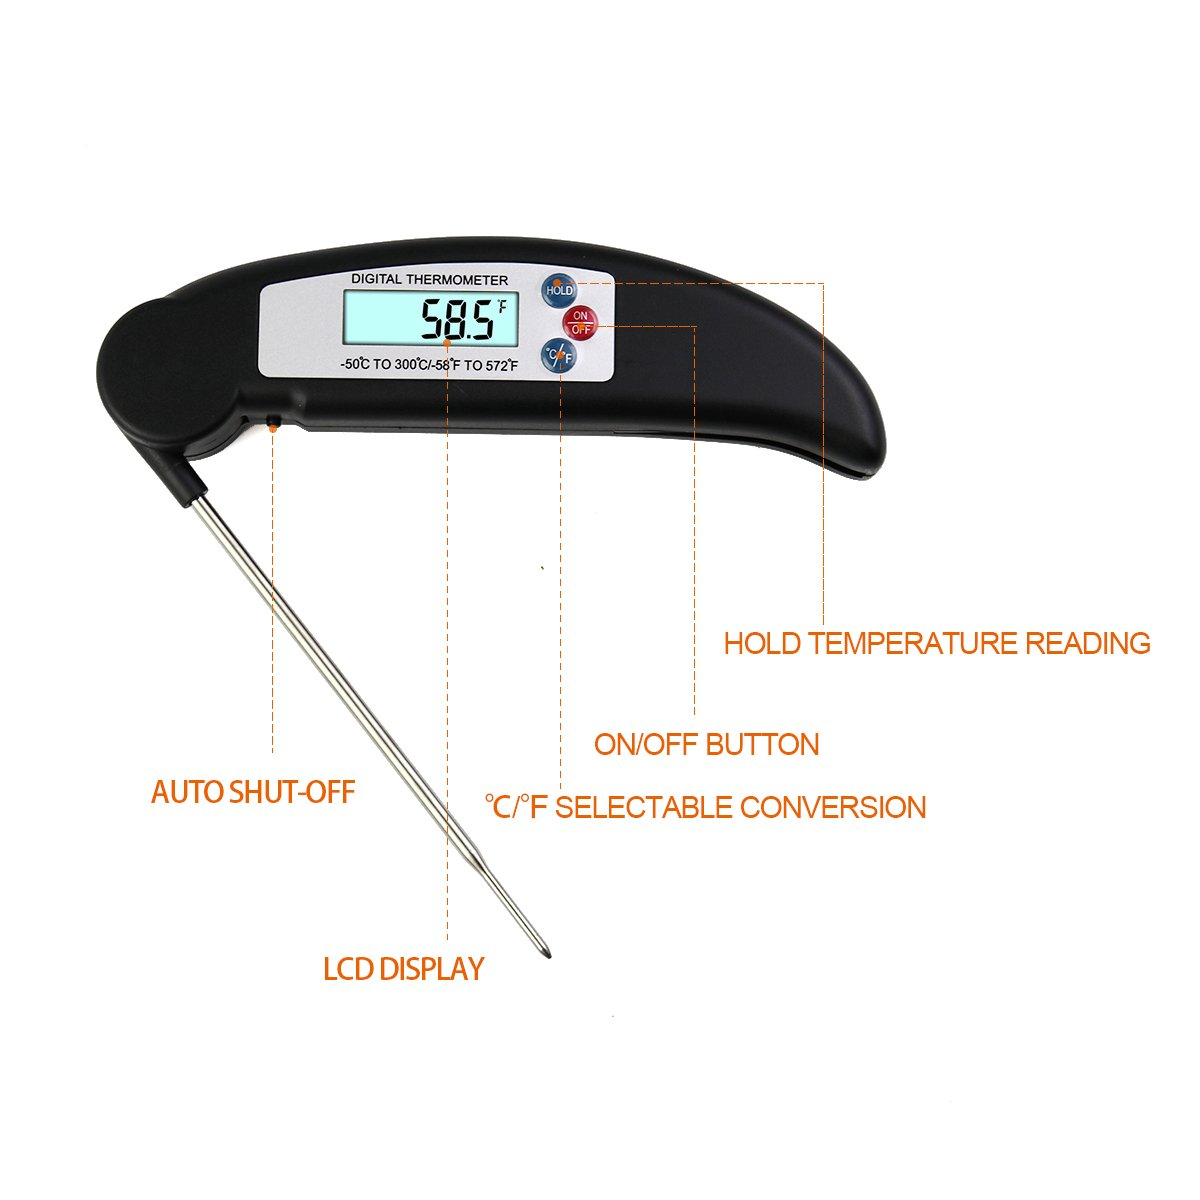 ALLESCOOL Digital Food Thermometer, Instant Read Meat Thermometer with Foldable Probe,Probe for Kitchen Cooking, BBQ, Poultry, Grill Food, Fast & Auto On/Off(black)